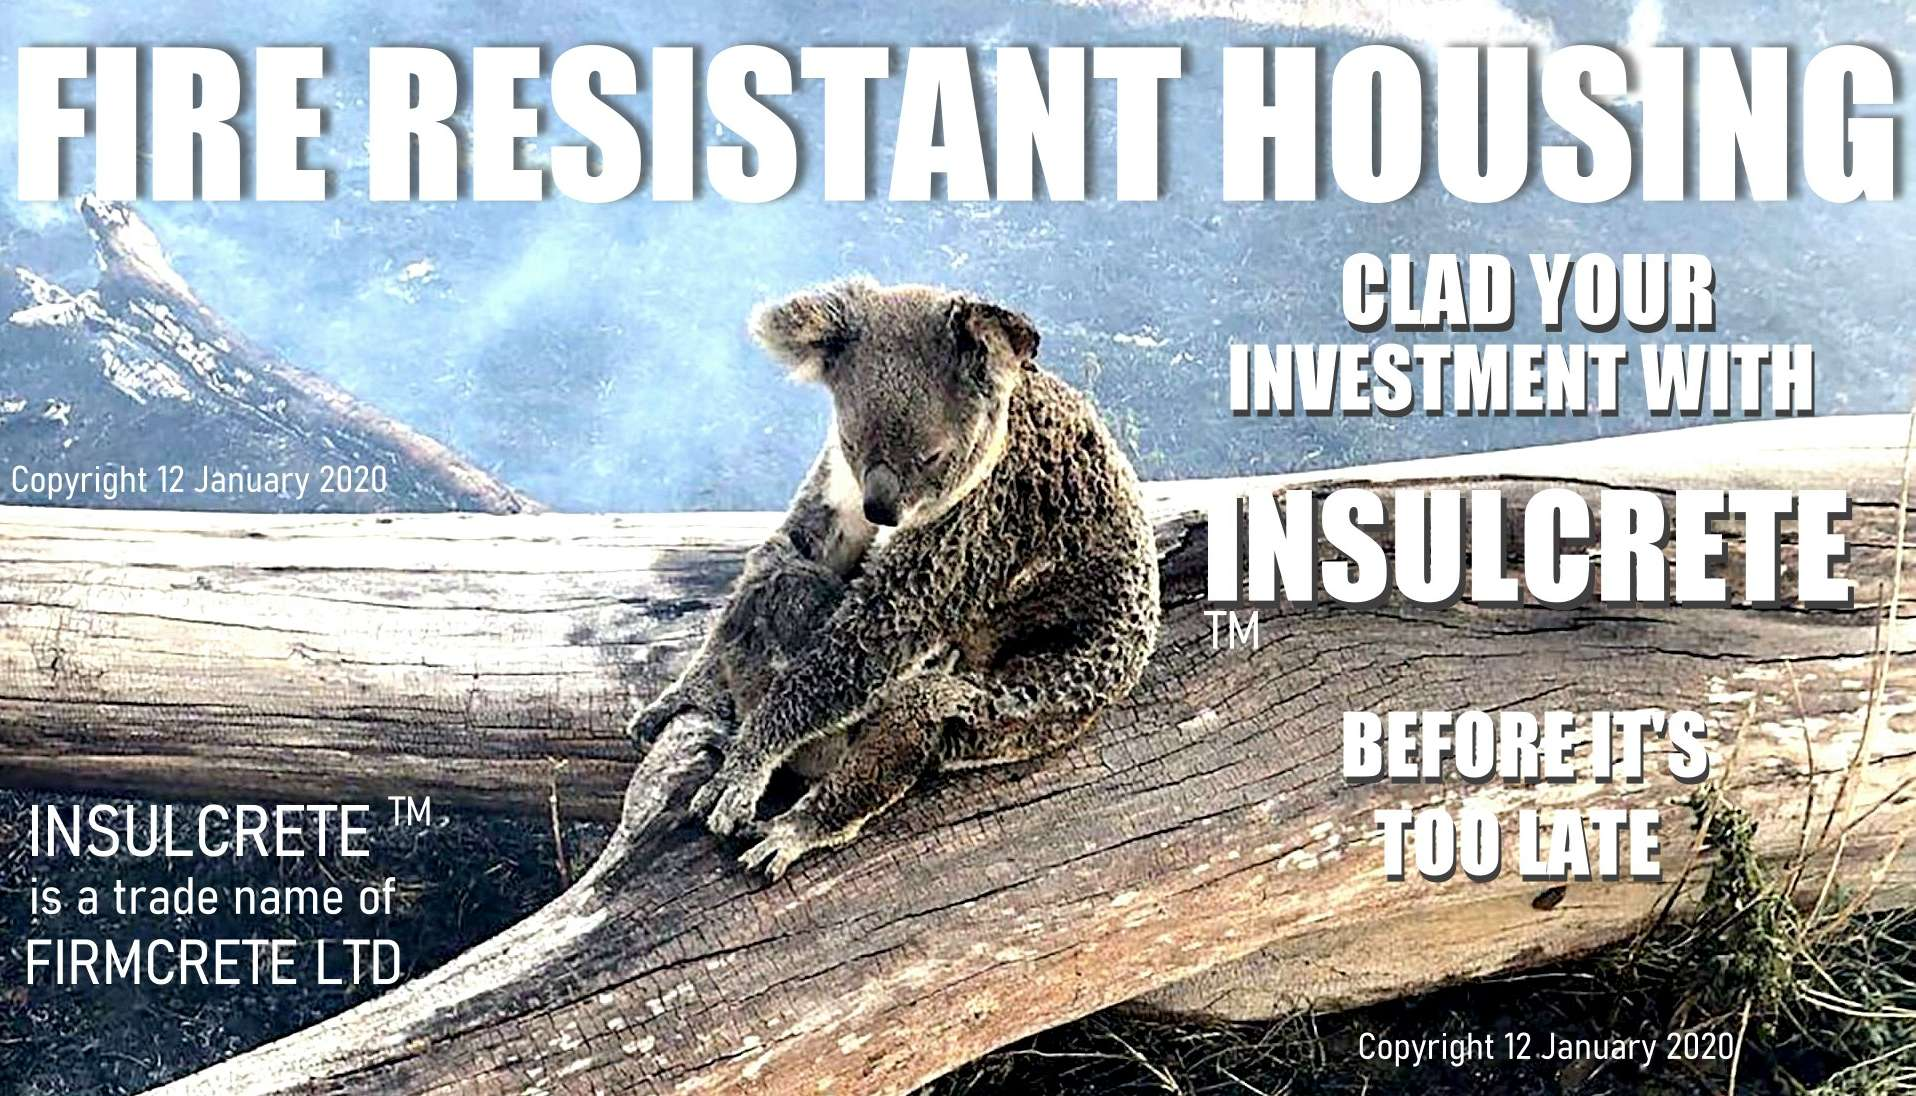 This koala bear cannot control its future, you can. Build fireproof houses in bushfire area